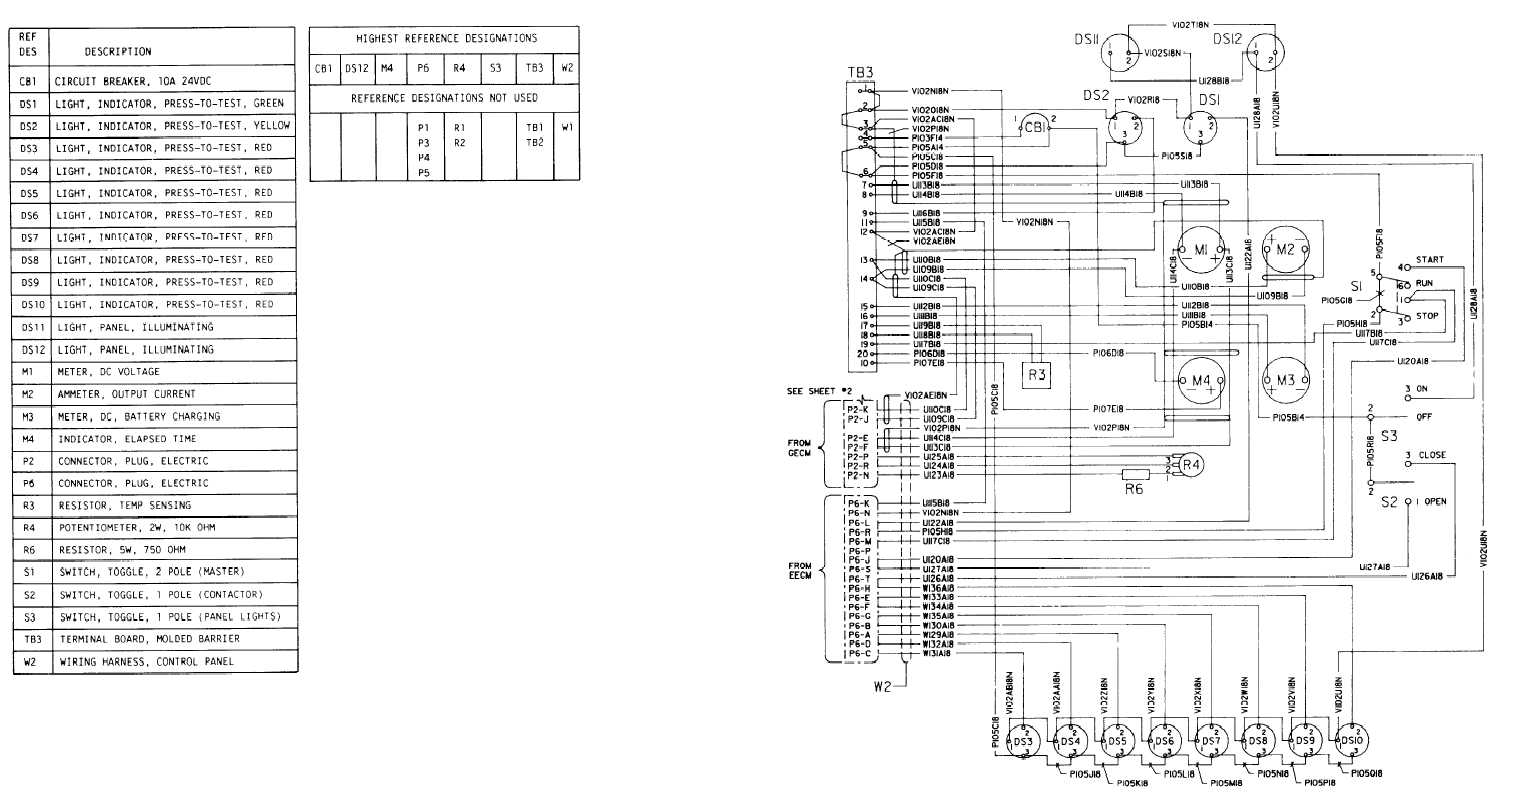 TM 5 6115 612 12_301_1 fo 4 control panel wiring diagram photo control wiring diagram at bakdesigns.co